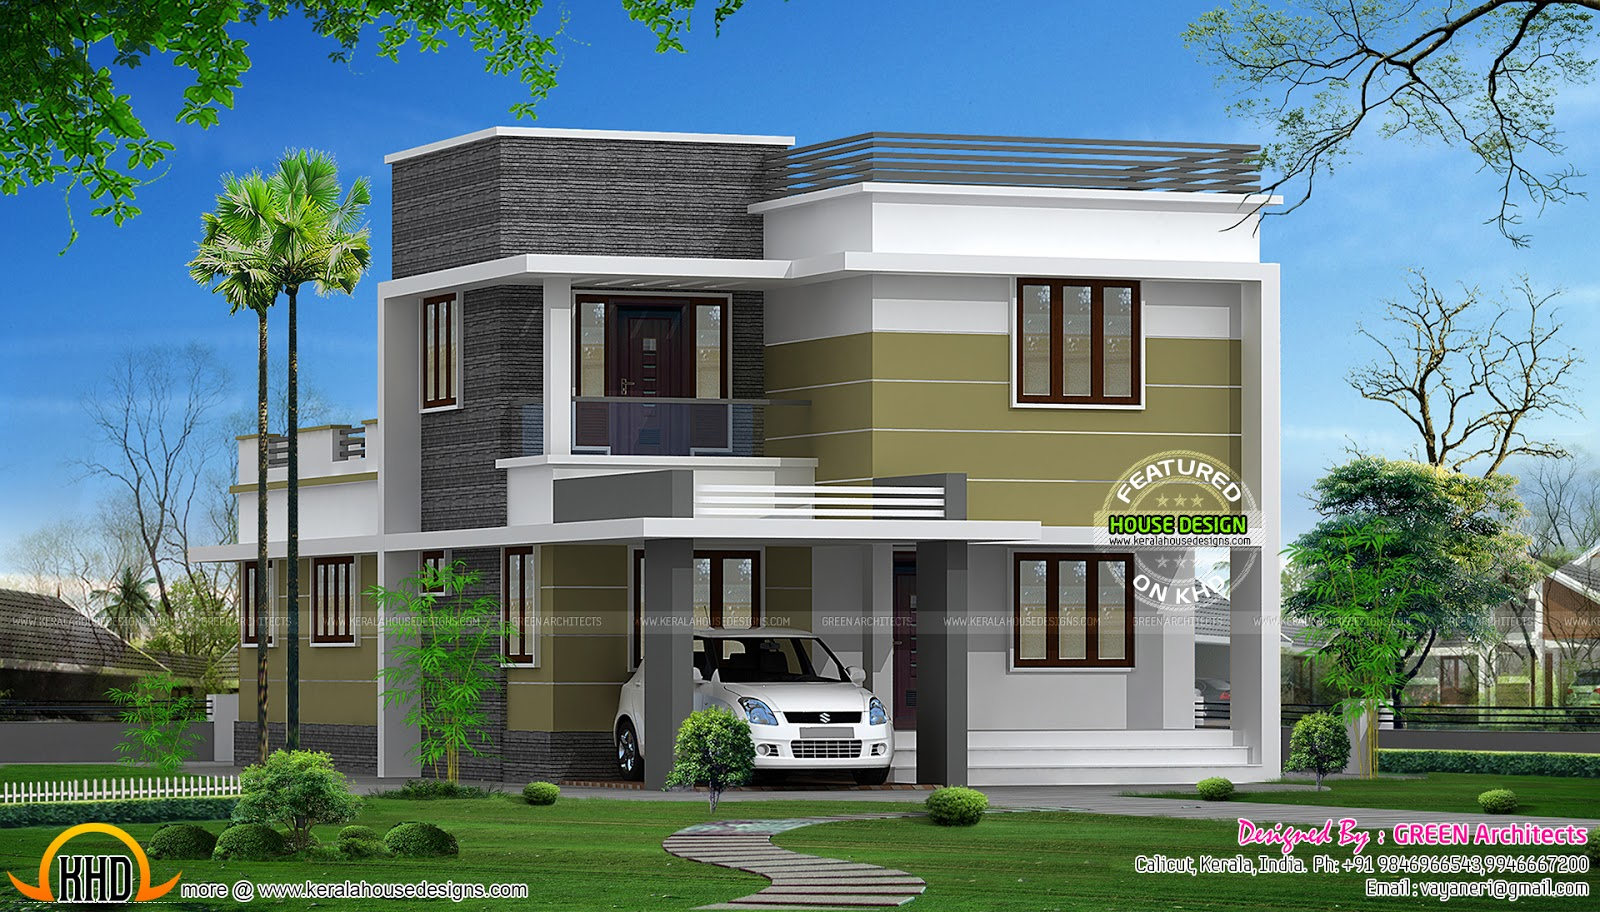 186 sq m small double storied house in kerala kerala for Small house images in kerala